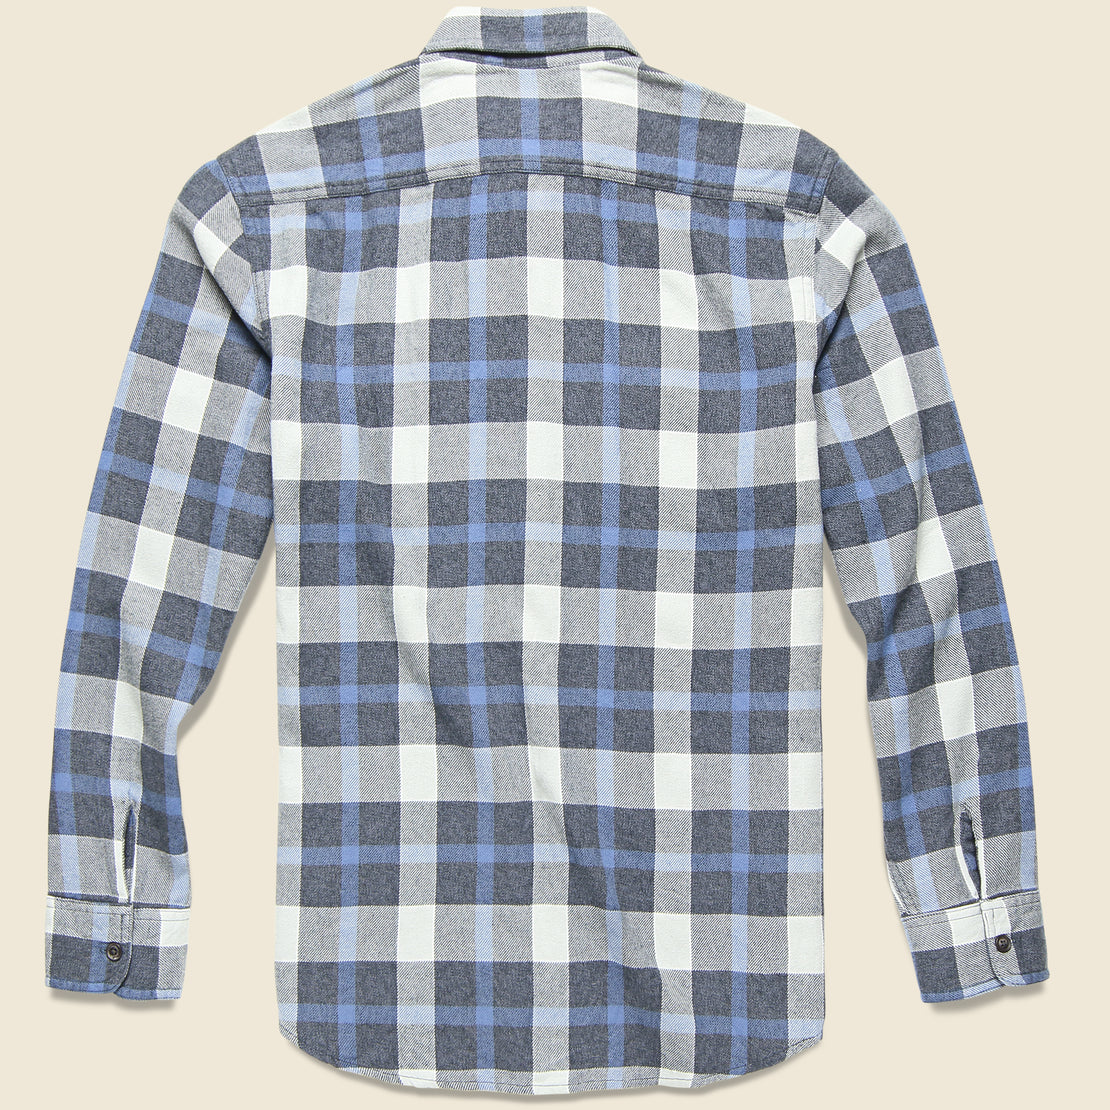 Keats 3-Ply Jaspe Shirt - Blue Plaid